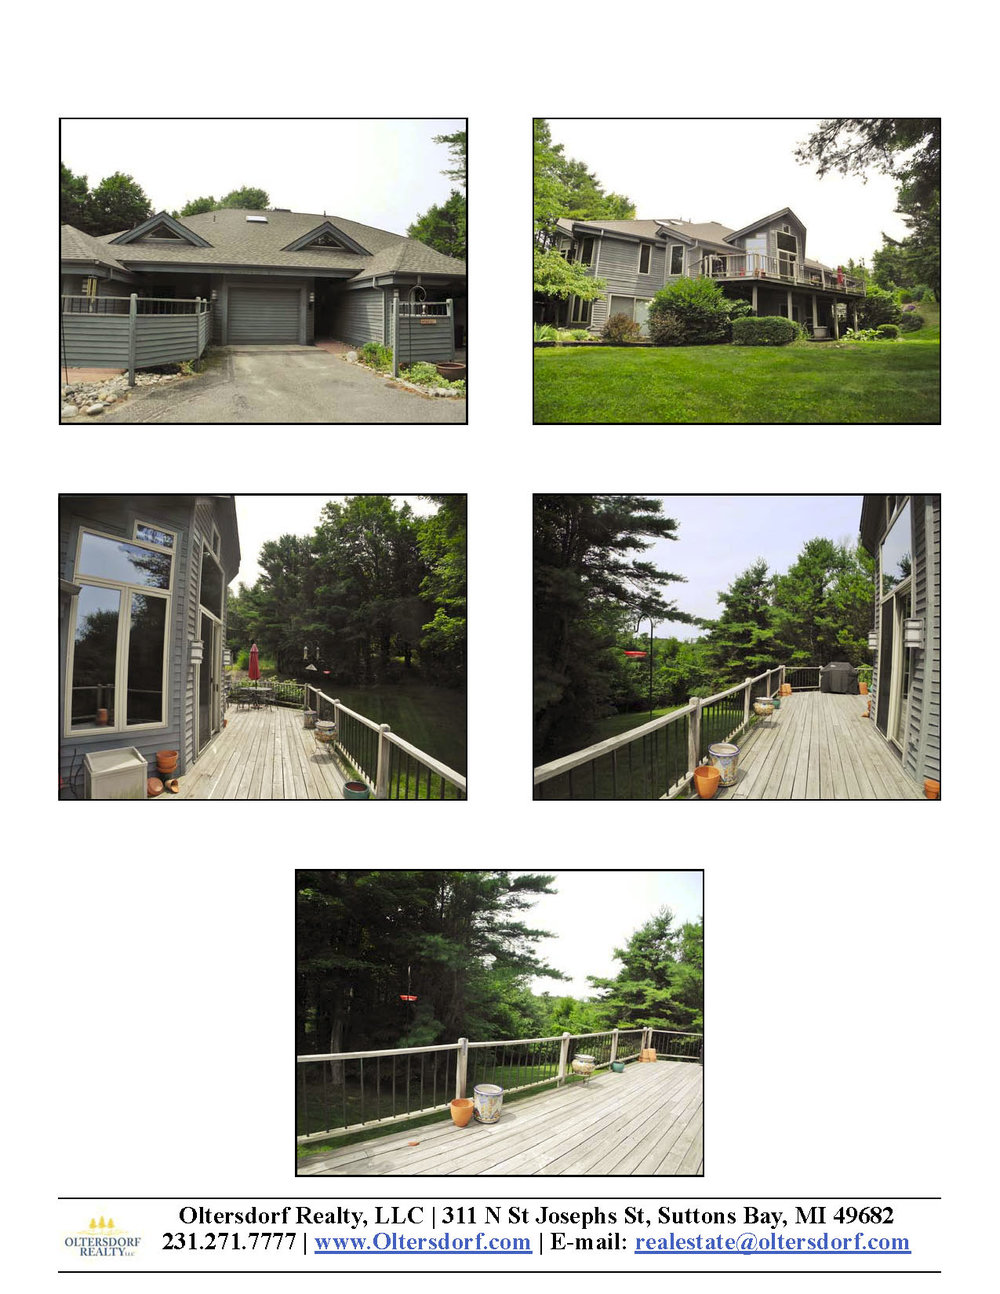 405 N Vincer Way Unit 5, Northport – FOR SALE by Oltersdorf Realty LLC - Marketing Packet (2).jpg